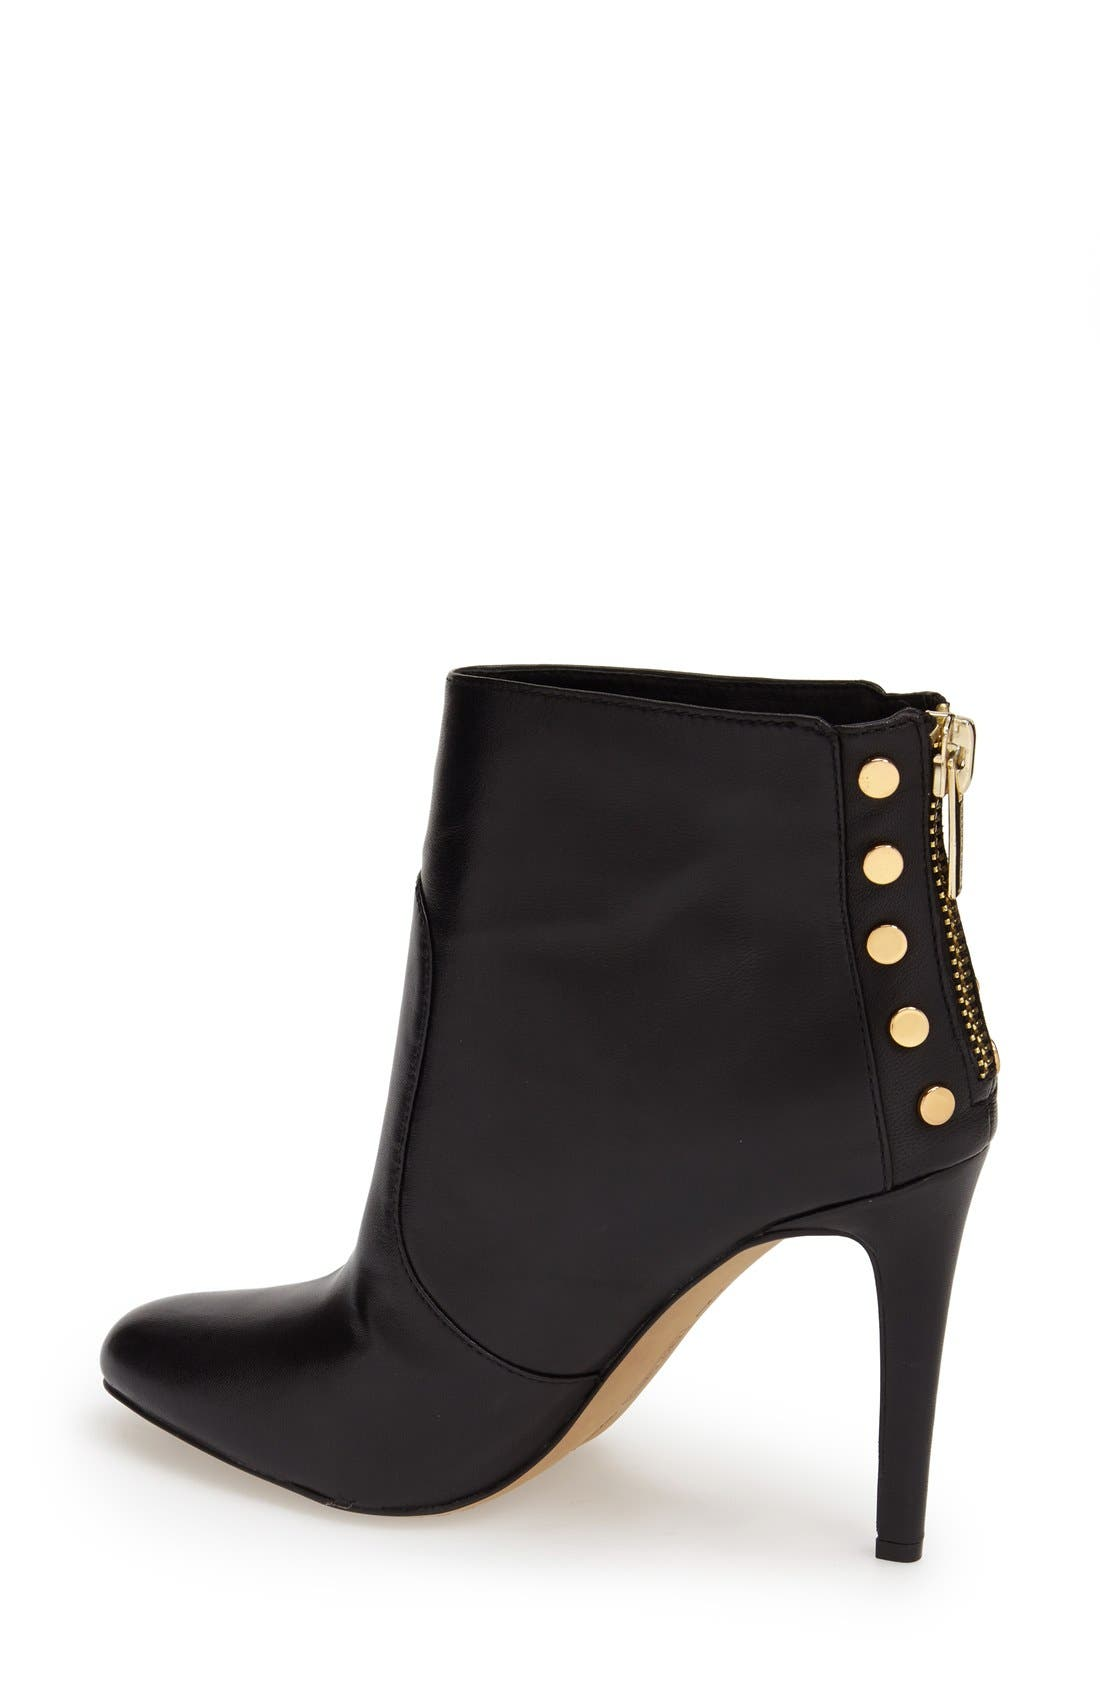 VINCE CAMUTO,                             'Bustell' Studded Bootie,                             Alternate thumbnail 4, color,                             001